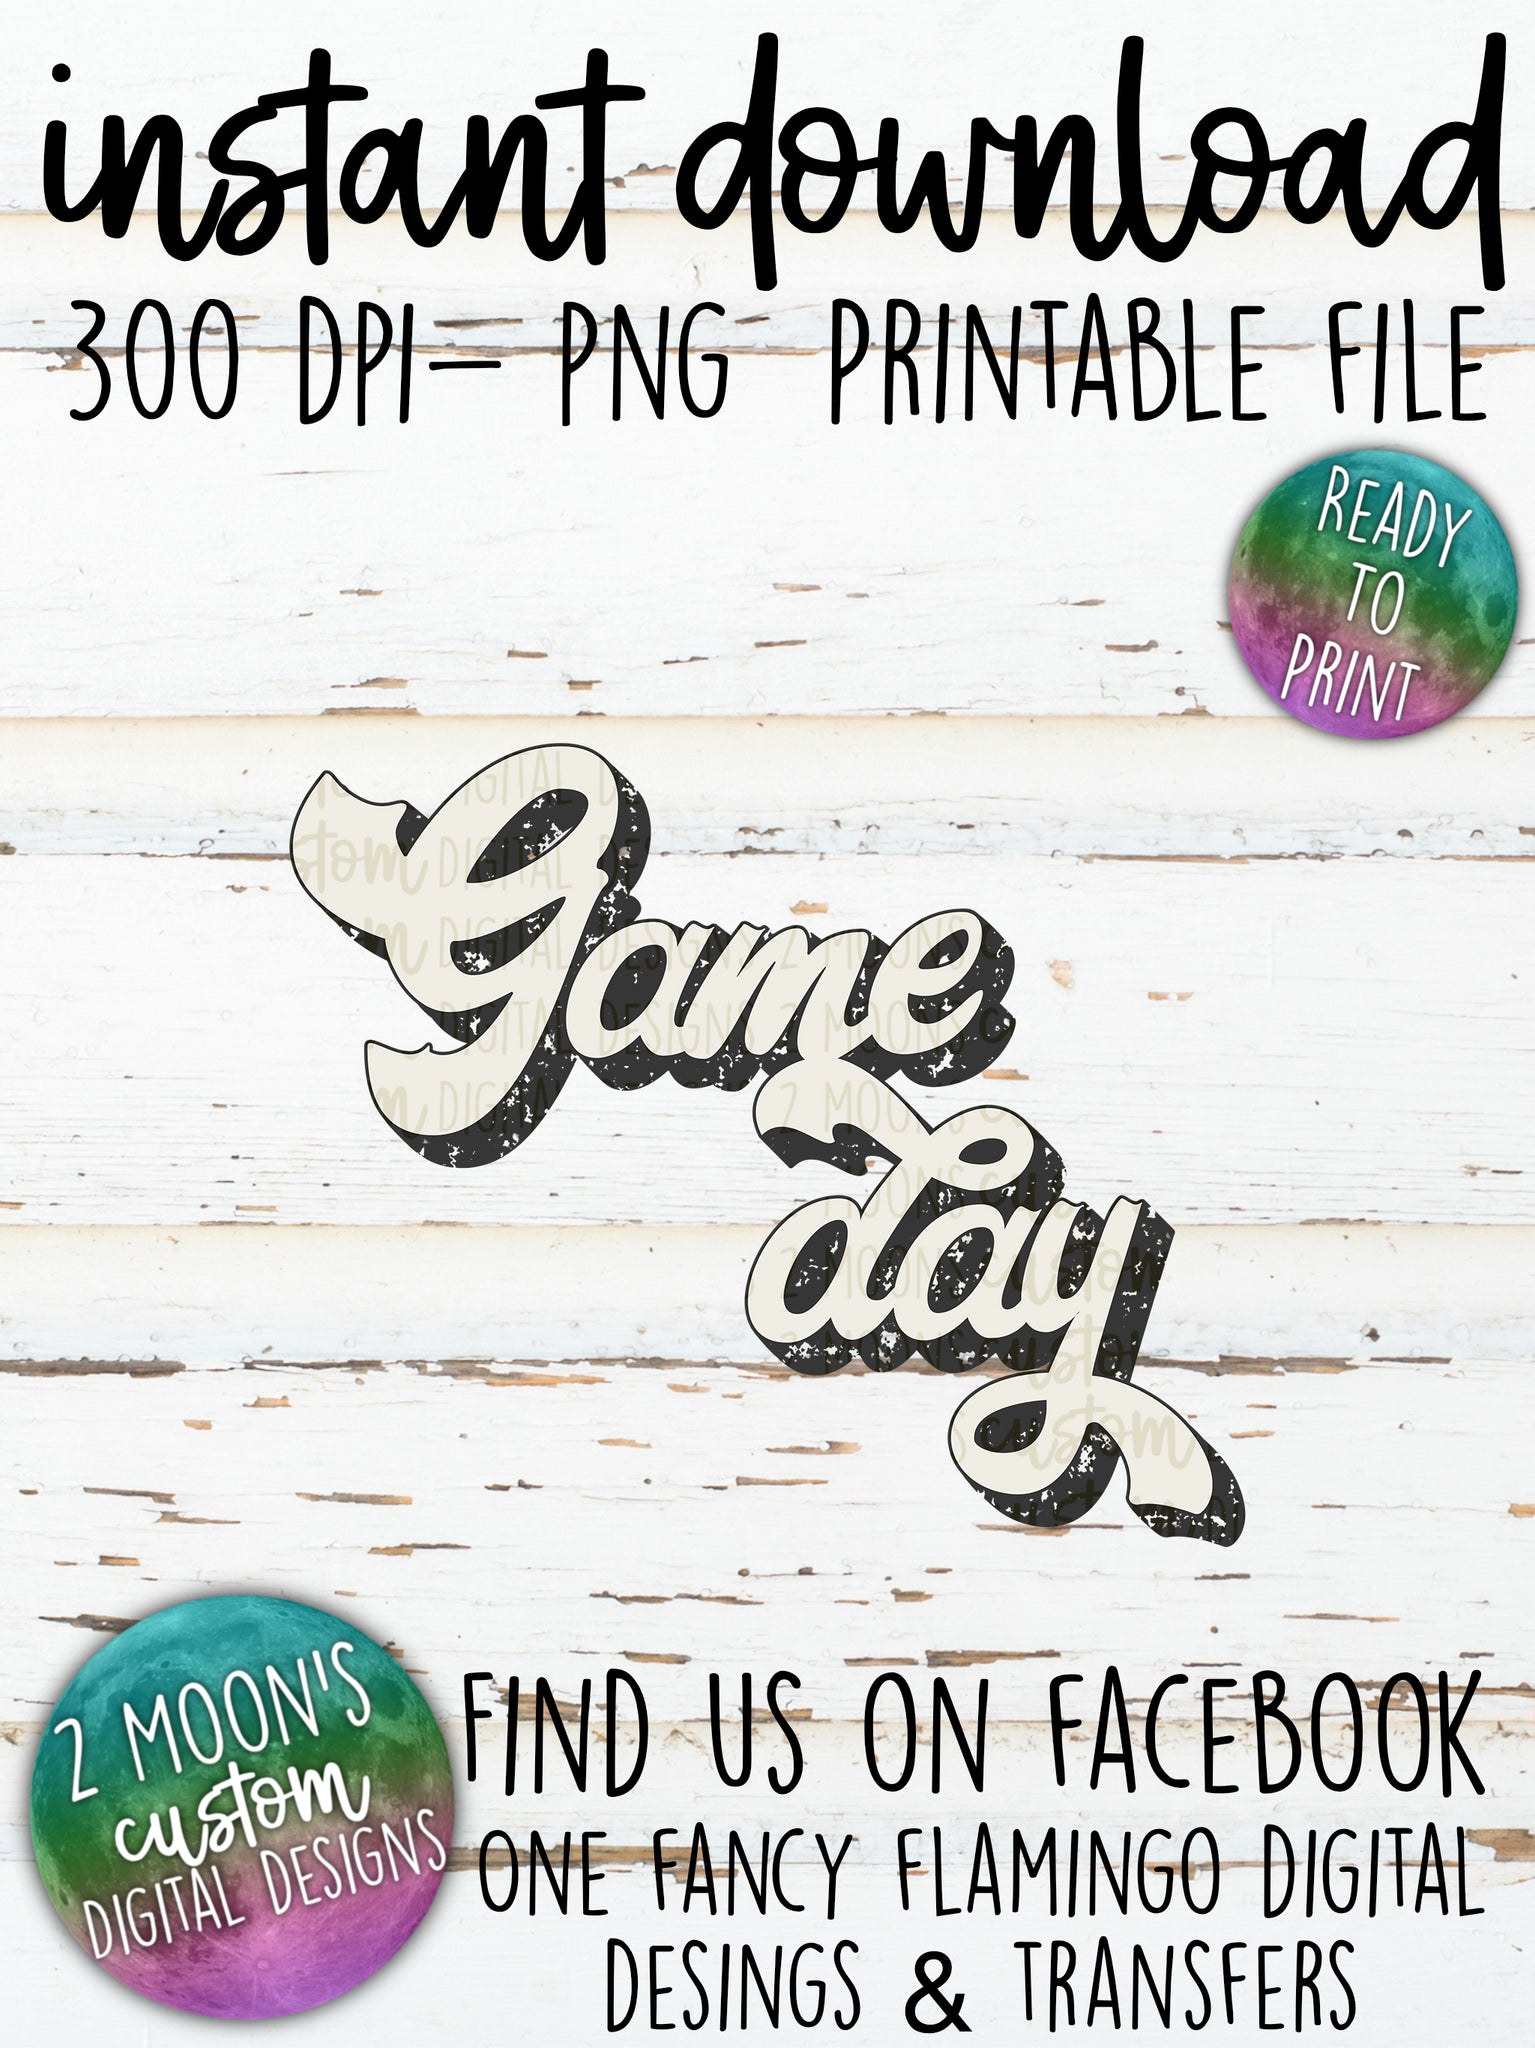 Distressed Game Day- Retro Design